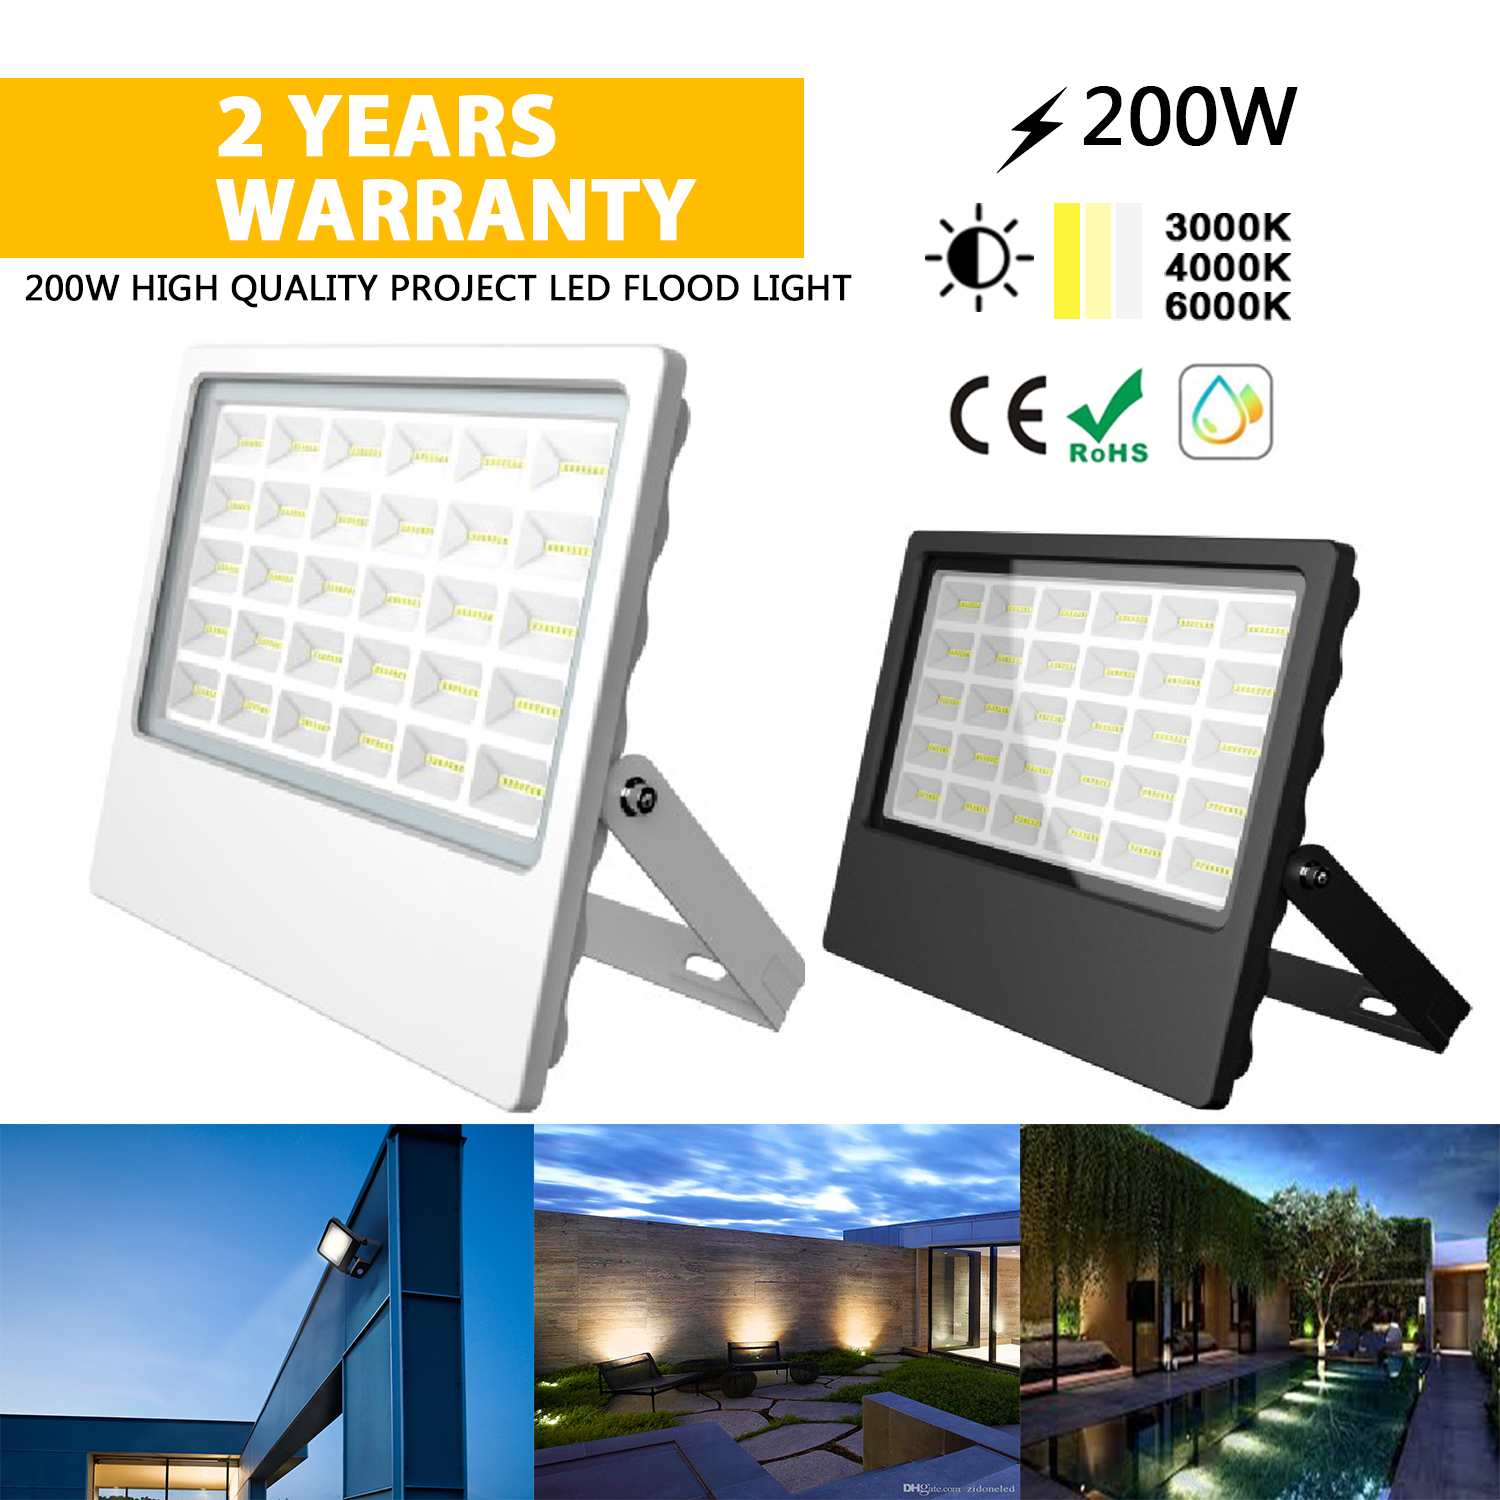 Flood light 1001-200W